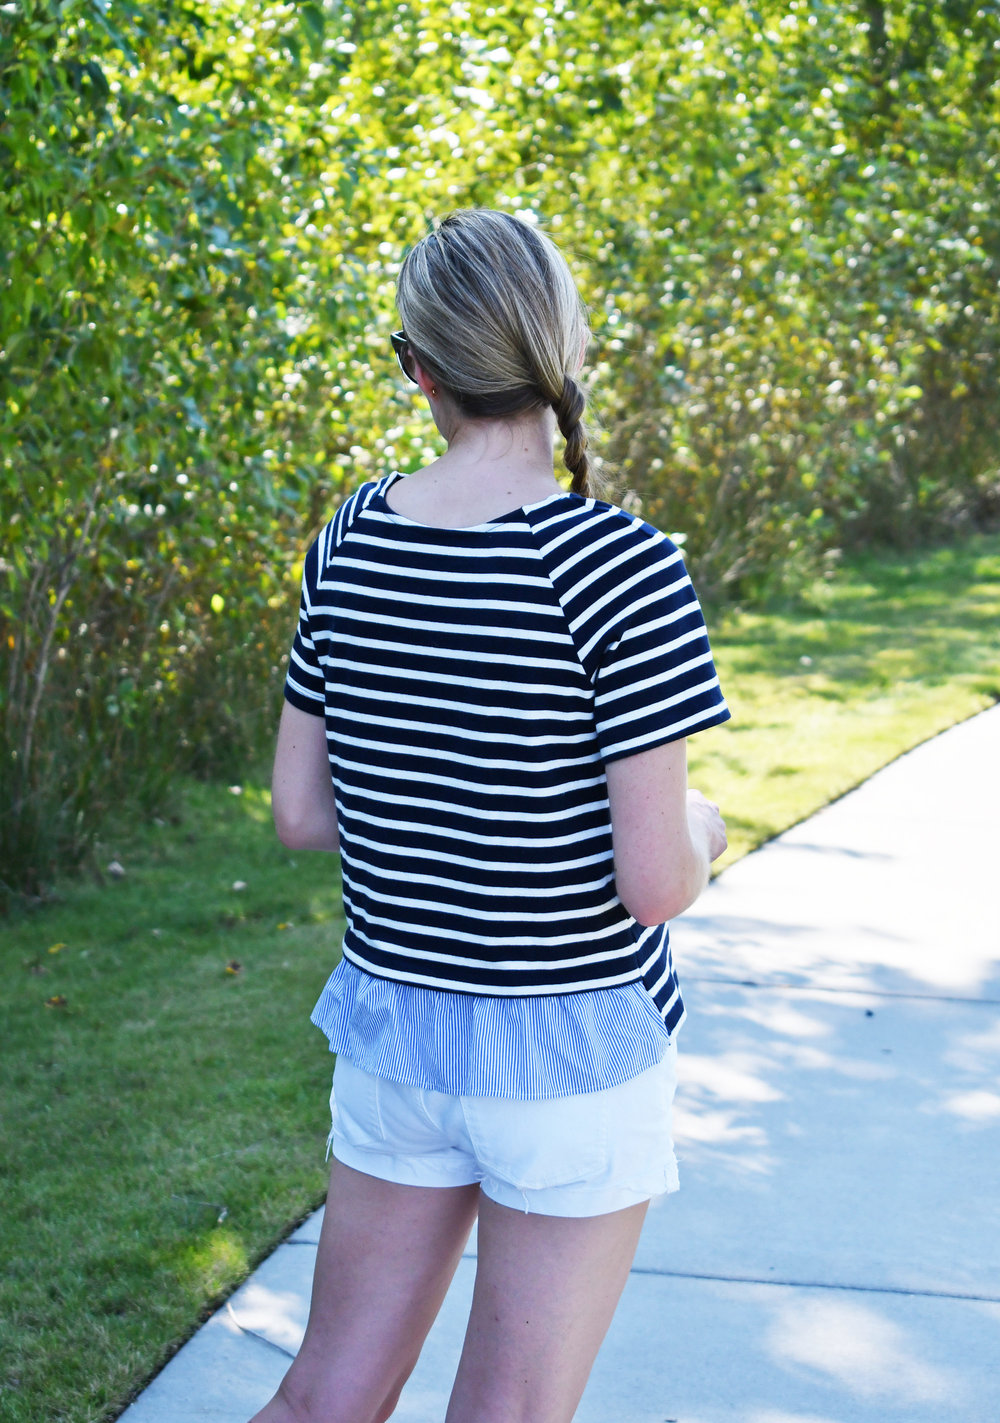 Amour Vert 'Annette' navy striped top outfit — Cotton Cashmere Cat Hair